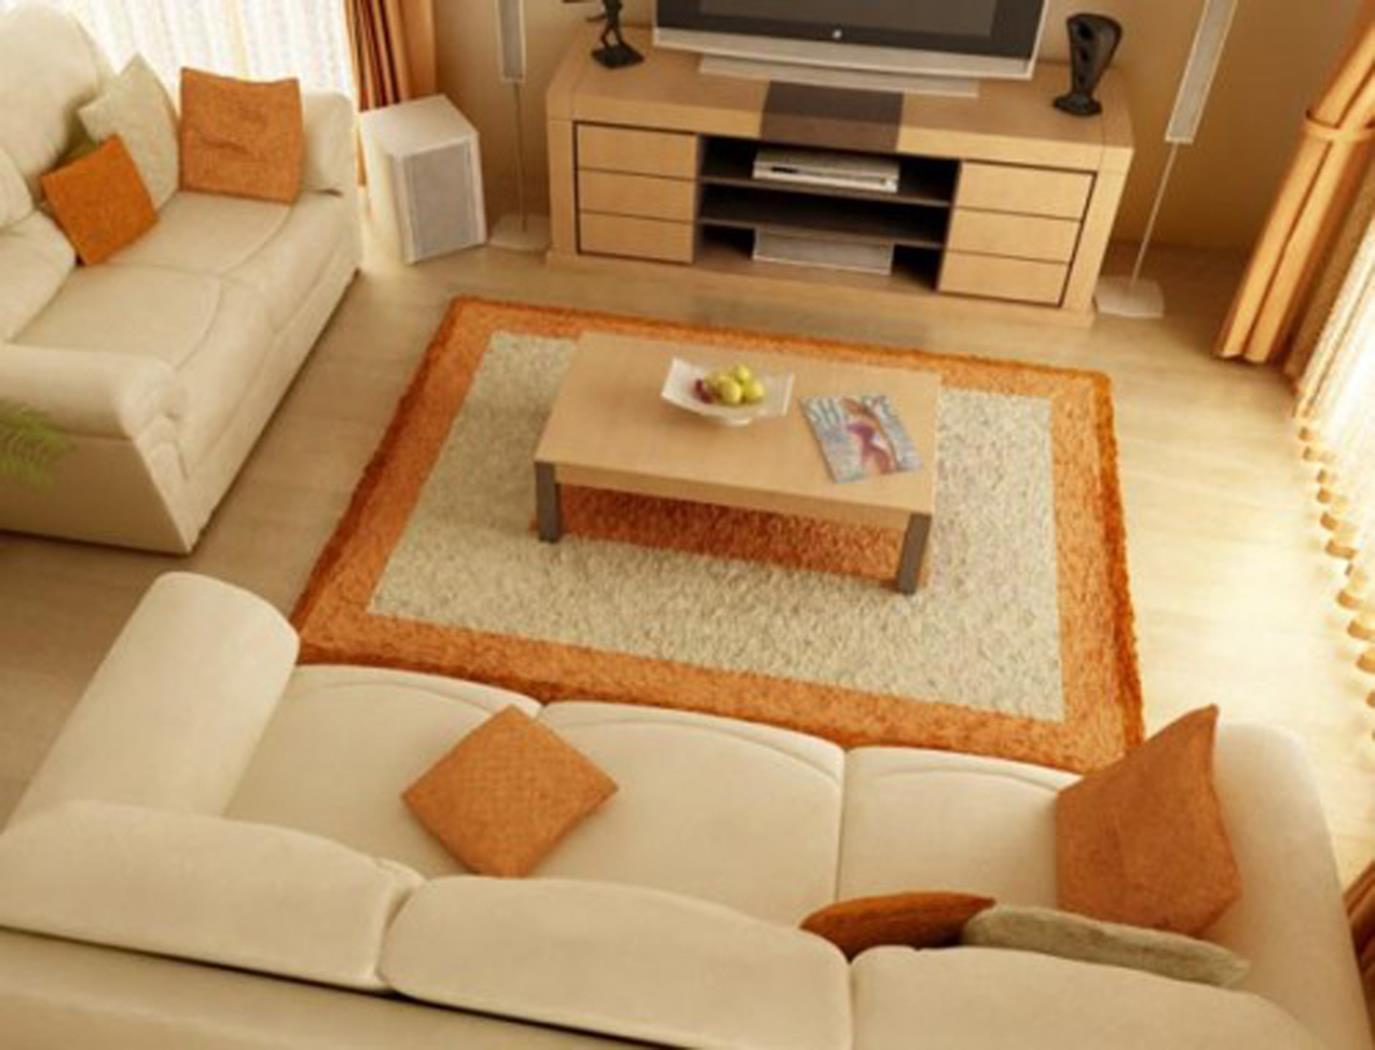 Living Room Furniture Ideas For Small Spaces 31